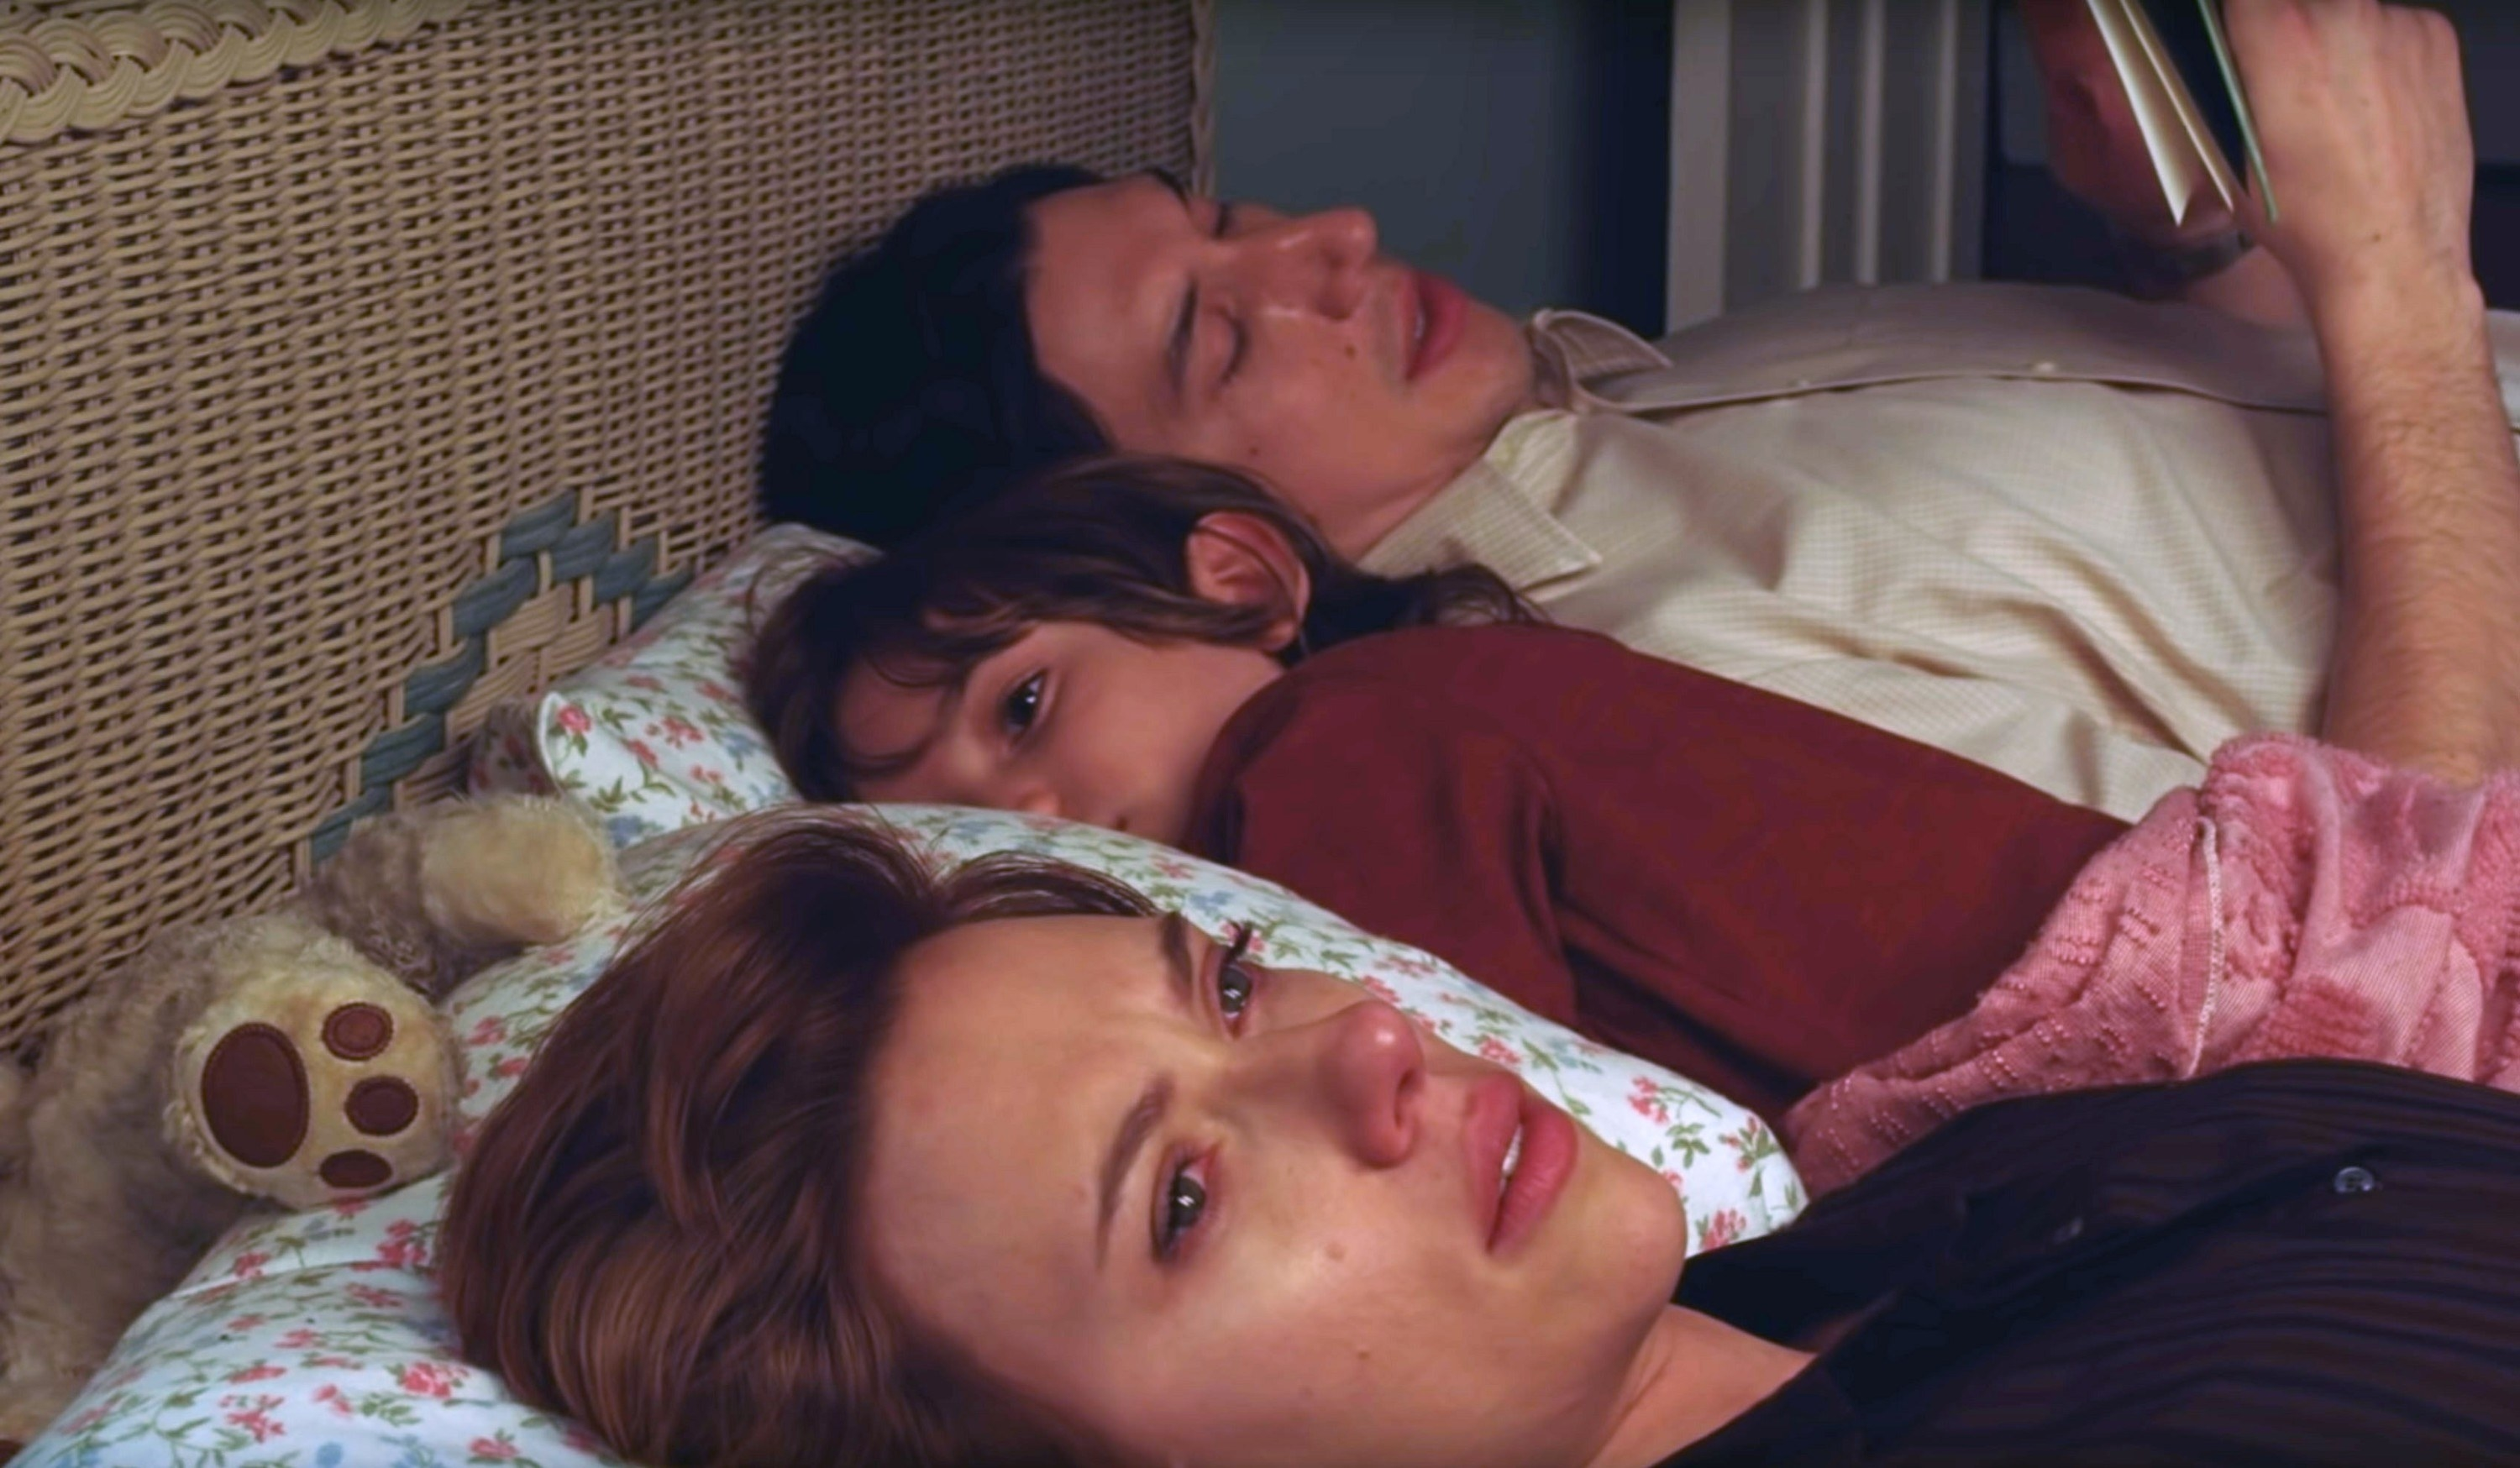 Scarlet Johansson in character lays in bed next to her kid and husband looking sad